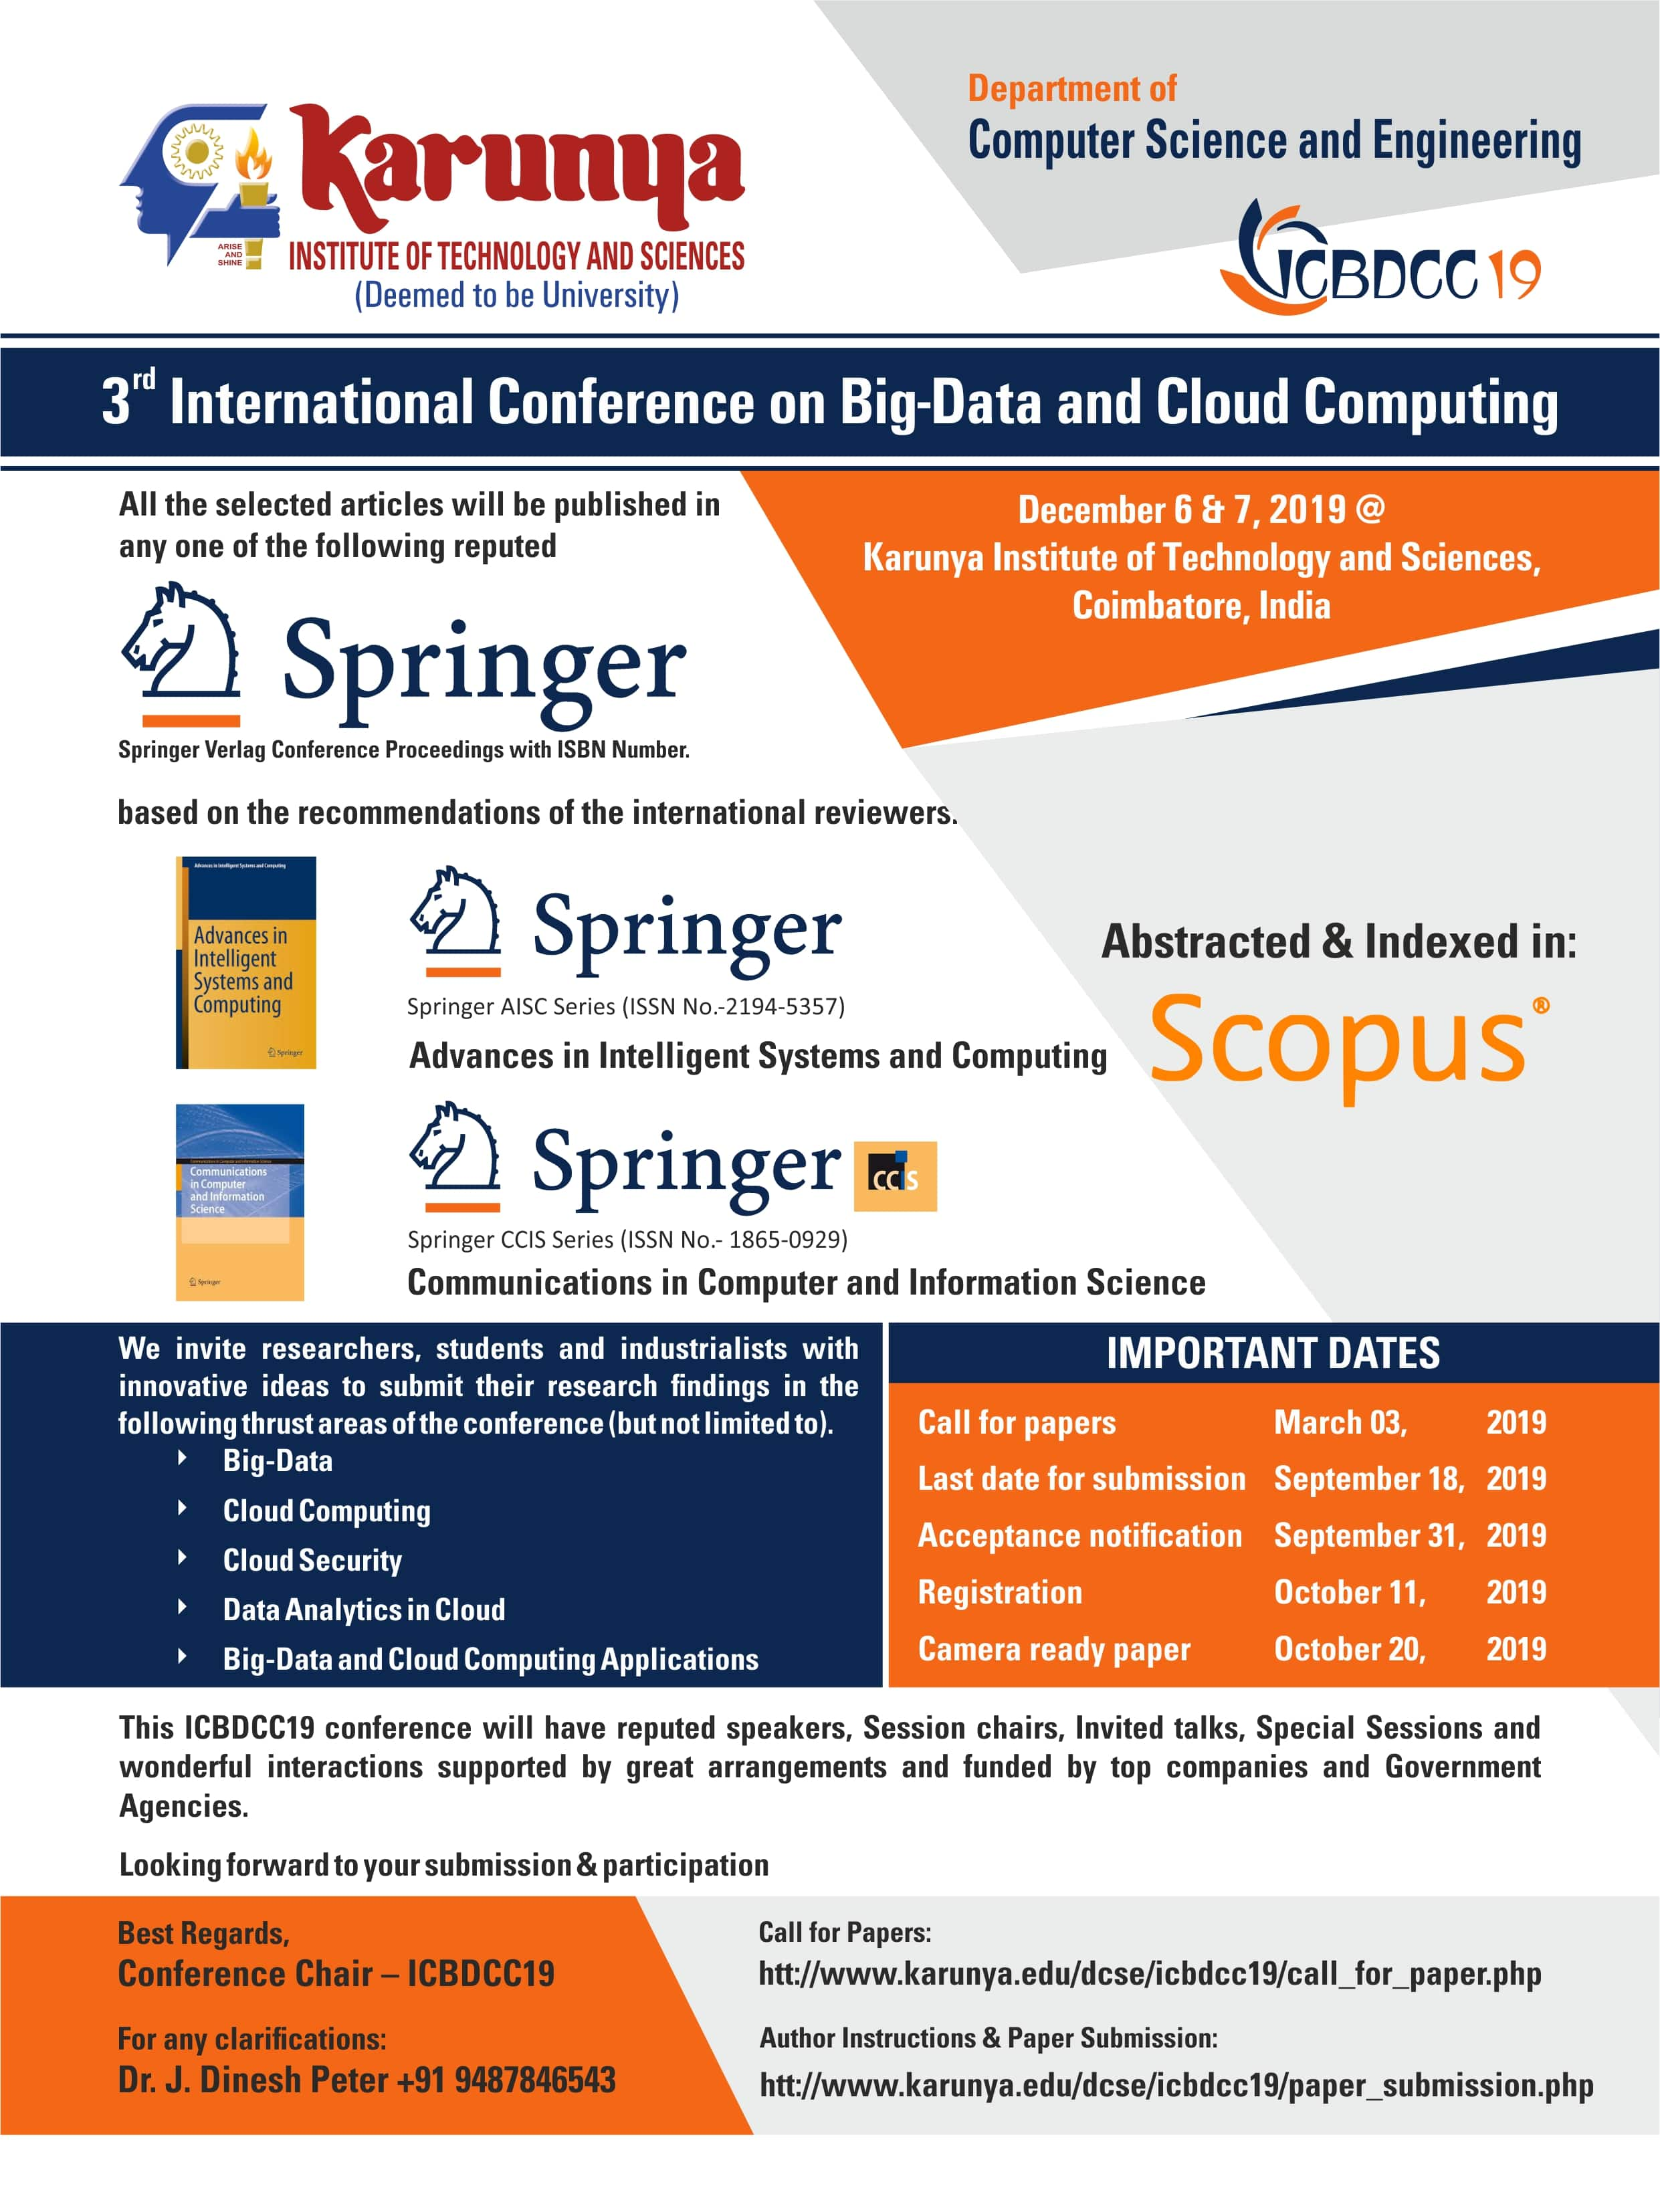 3rd International Conference on Big Data and Cloud Computing ICBDCC 2019